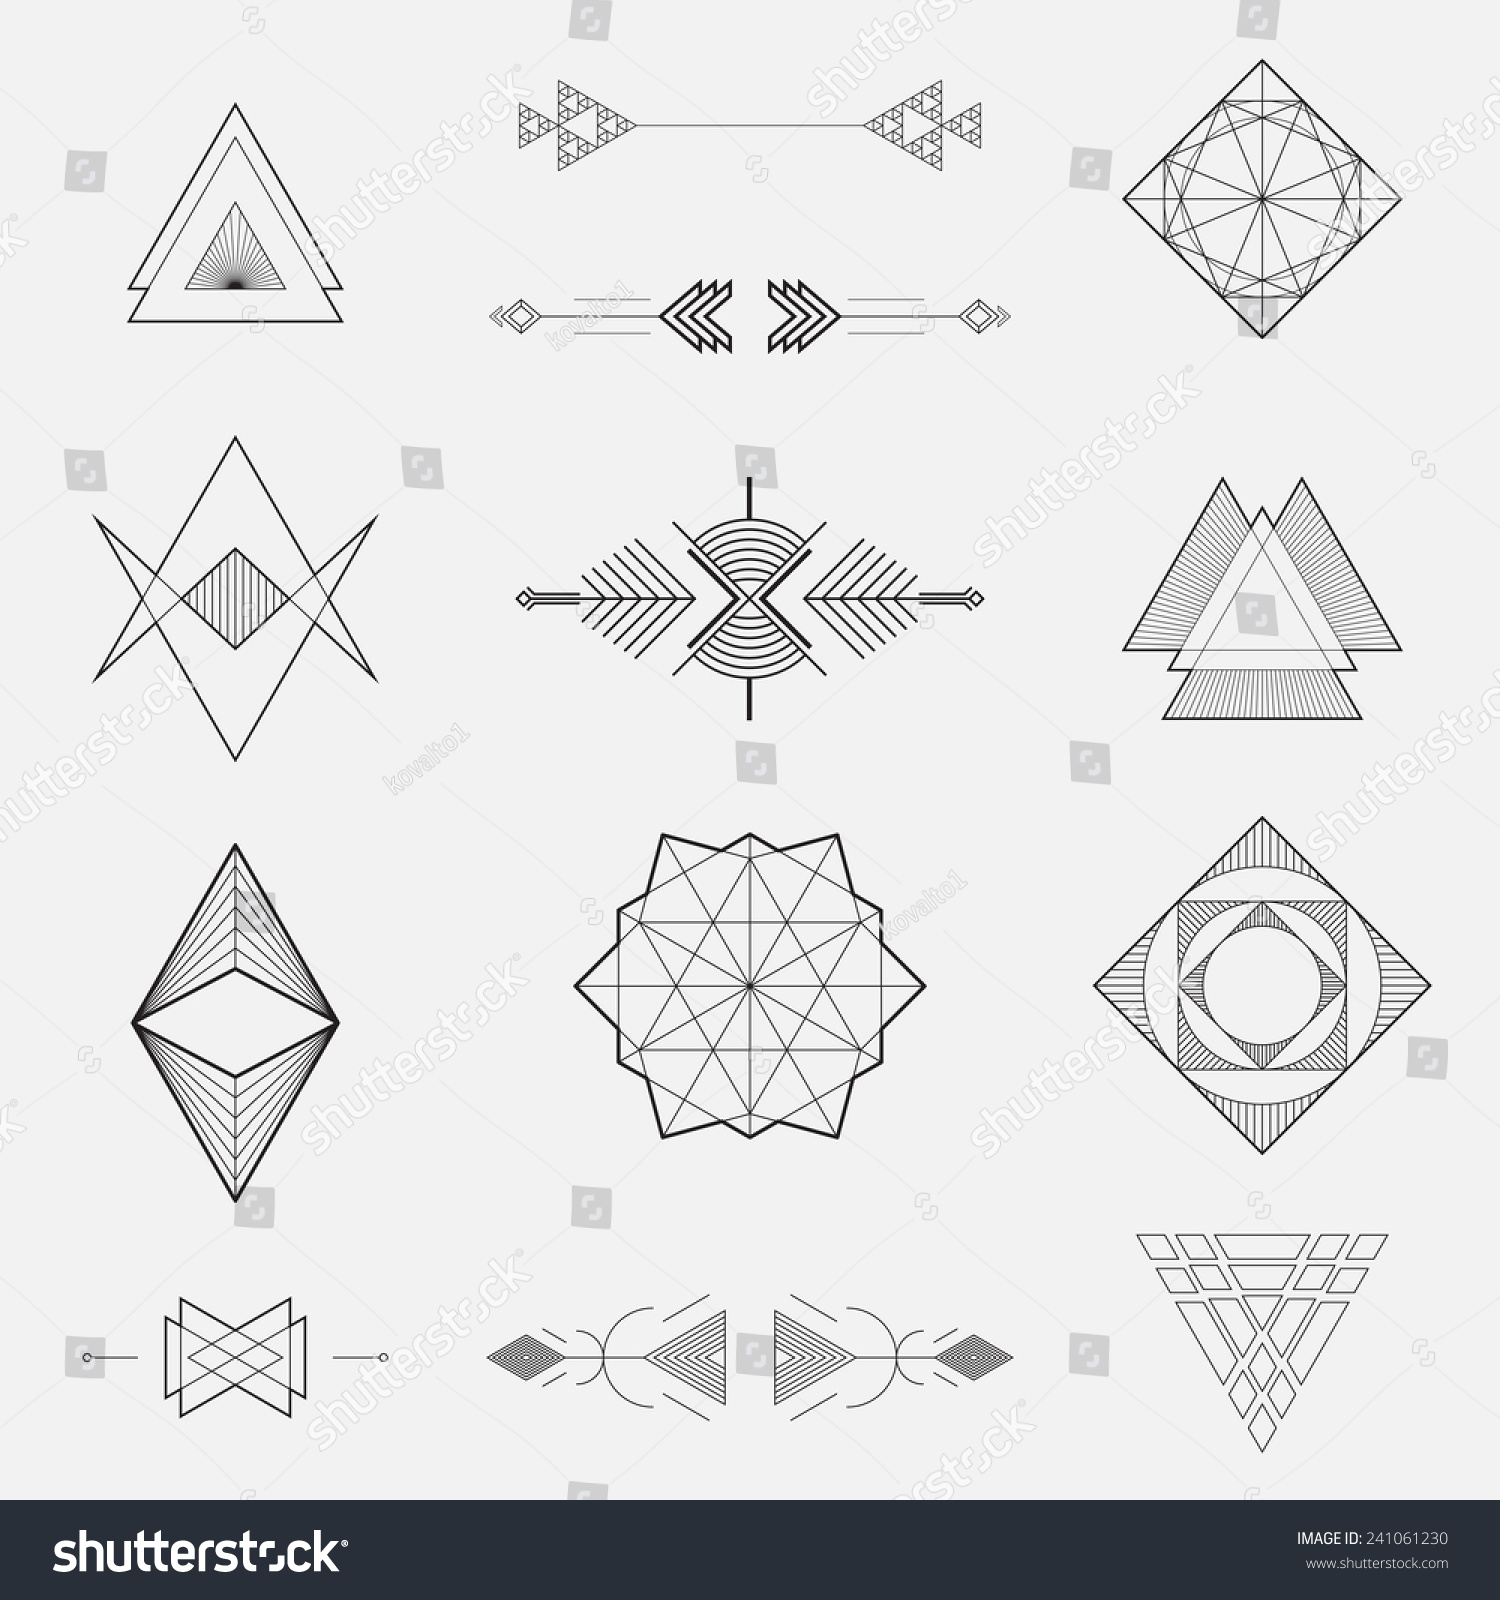 Basic Line Designs : Set geometric shapes triangles line design stock vector